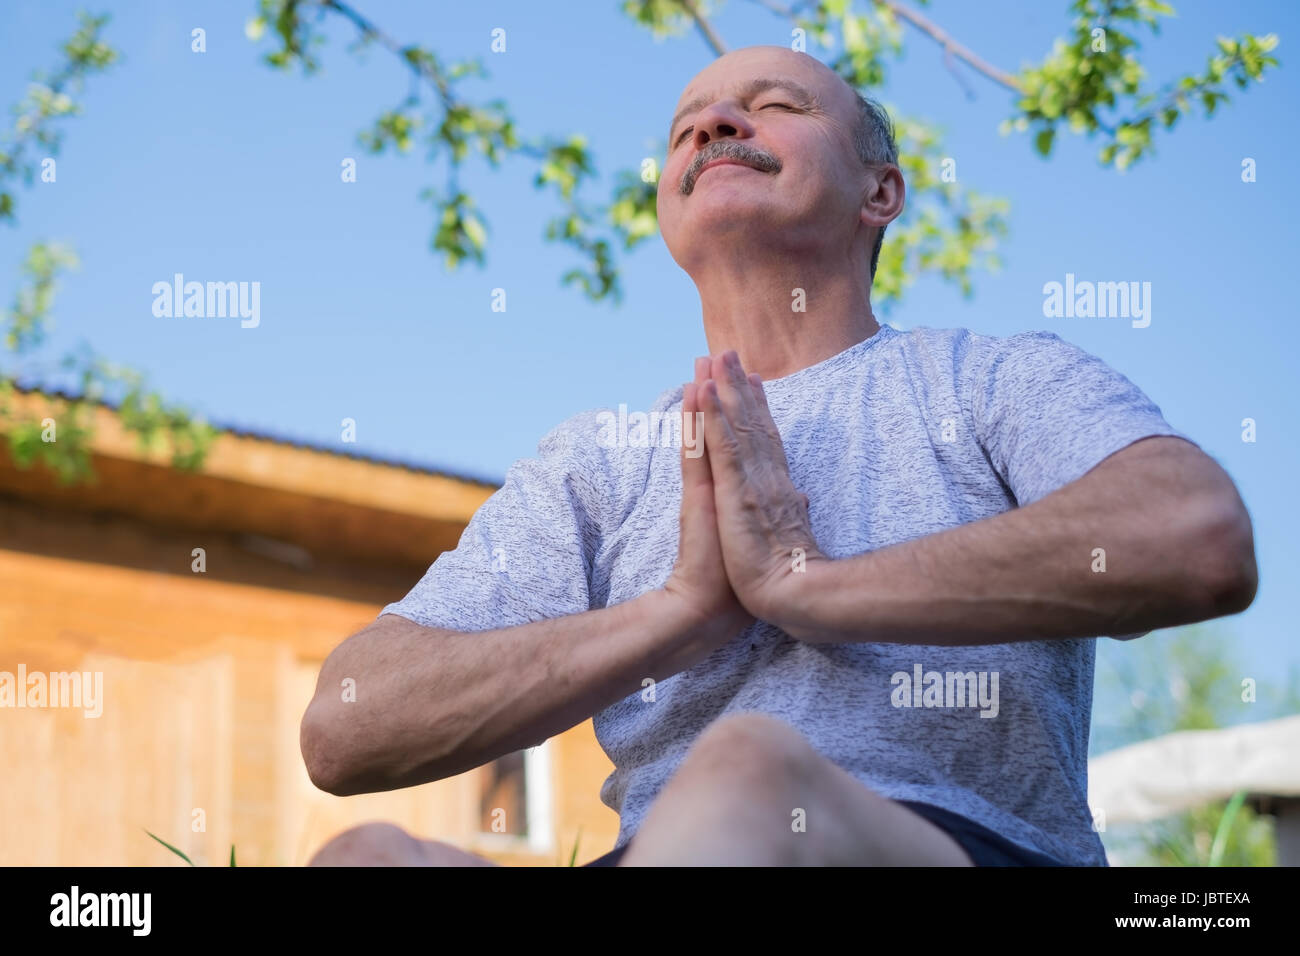 Senior man with mustache with namaste sitting.Concept of calm and meditation. - Stock Image